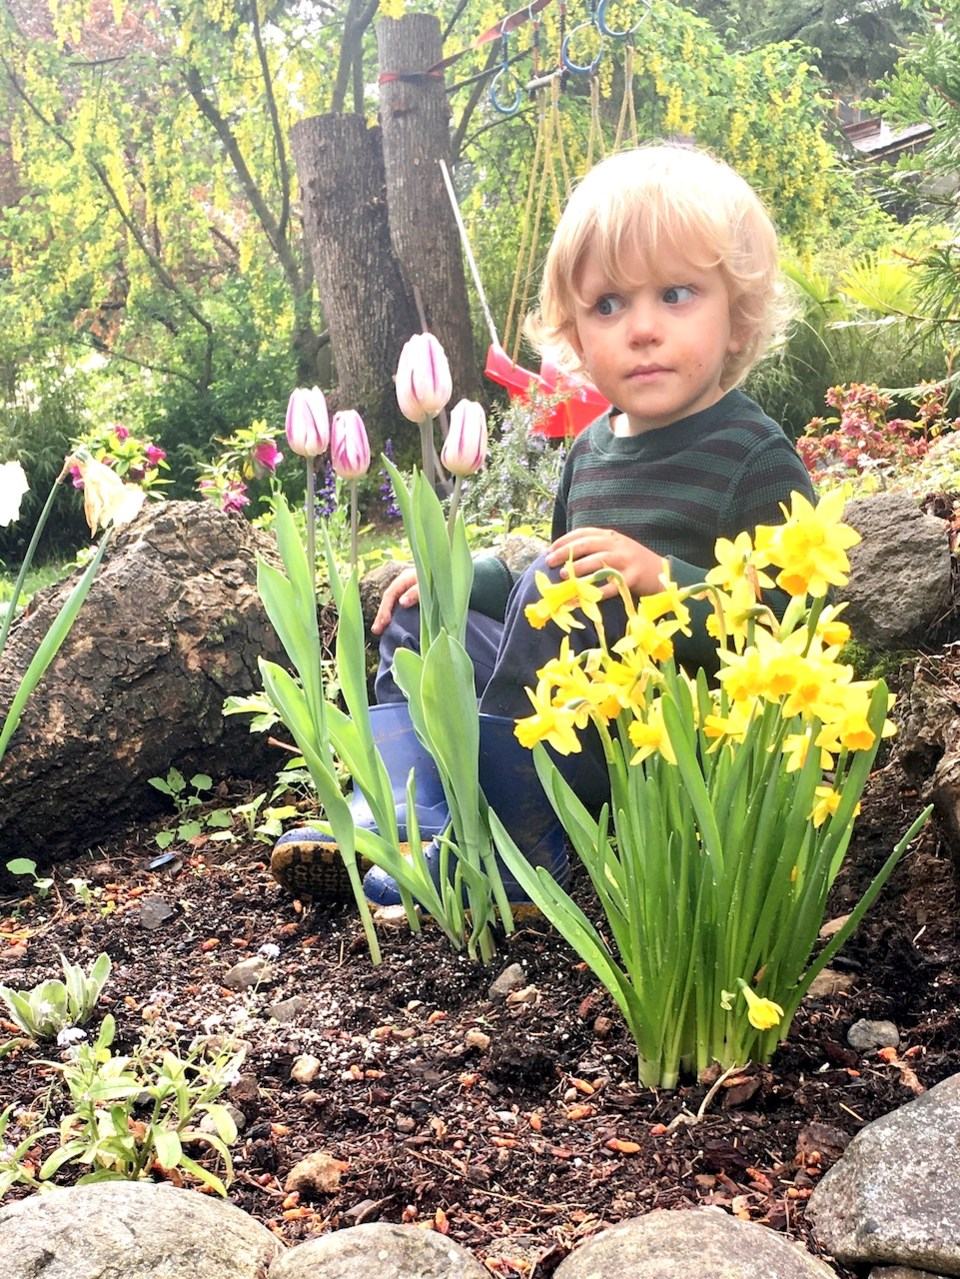 Monty in his garden with some yellow flowers